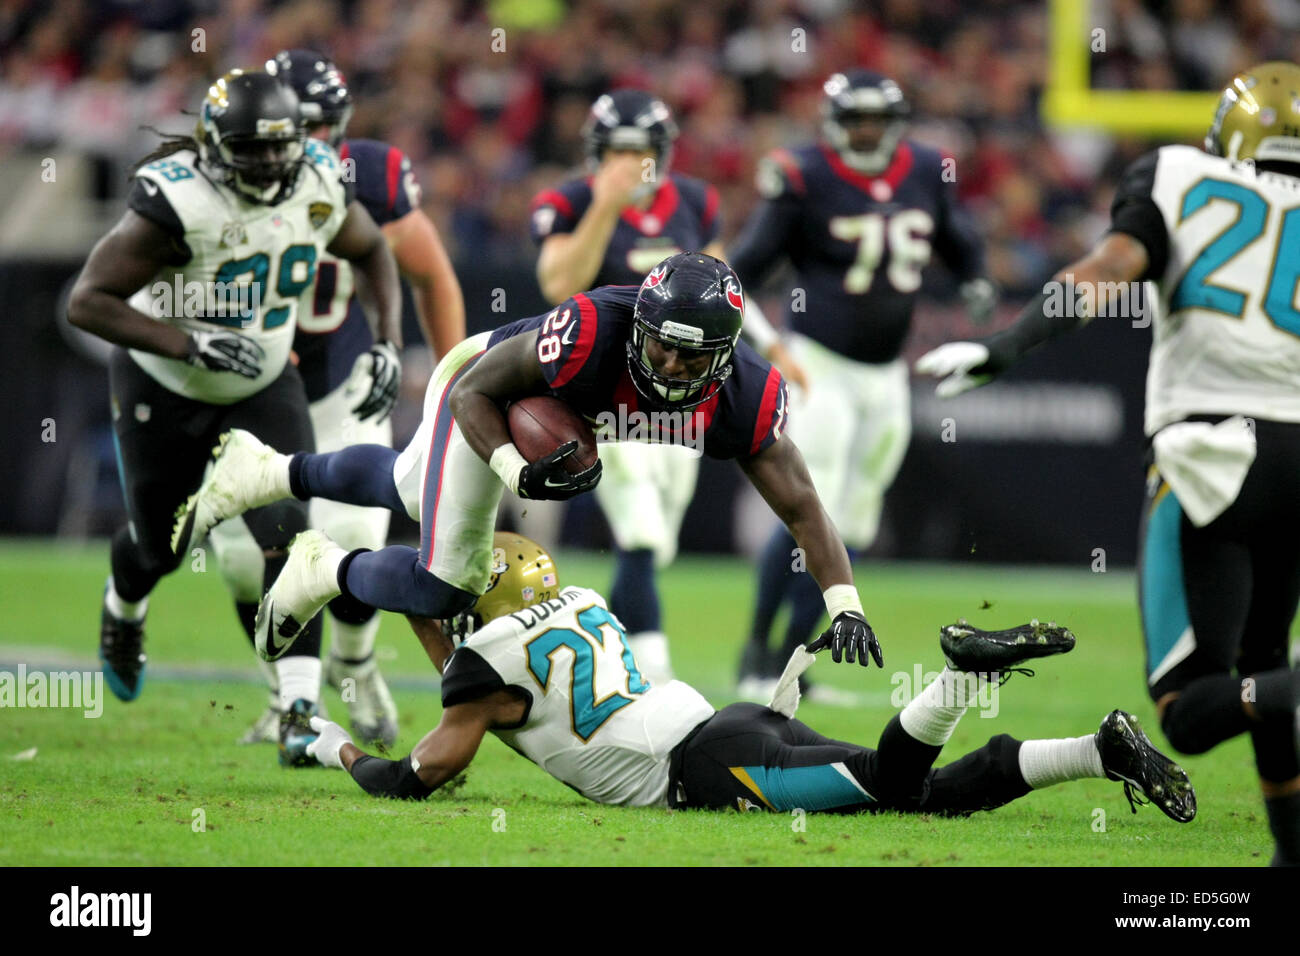 Houston, TX, USA. 28th Dec, 2014. Houston Texans running back Alfred Blue #28 is tripped up by Jacksonville Jaguars - Stock Image